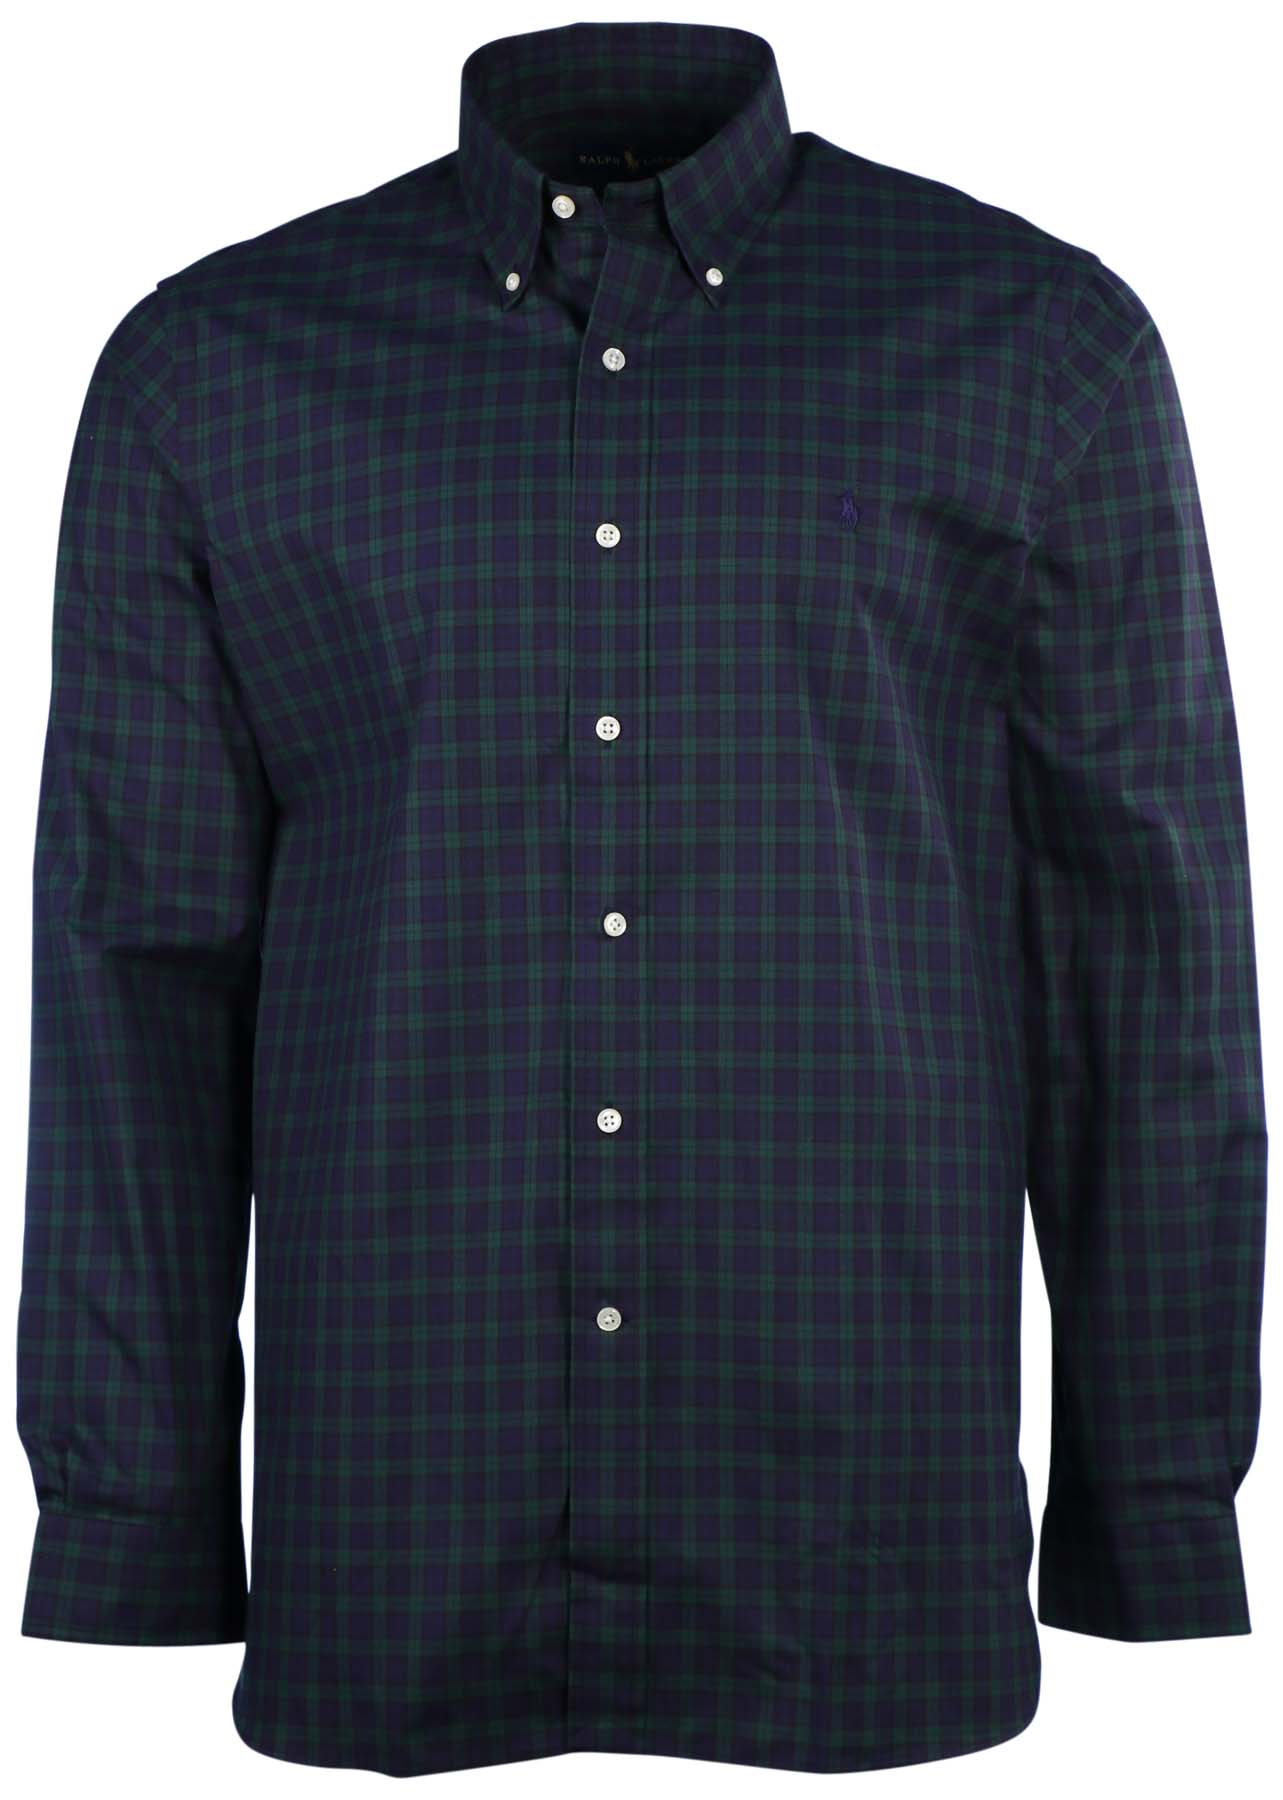 polo ralph lauren men 39 s plaid tartan button down shirt ebay